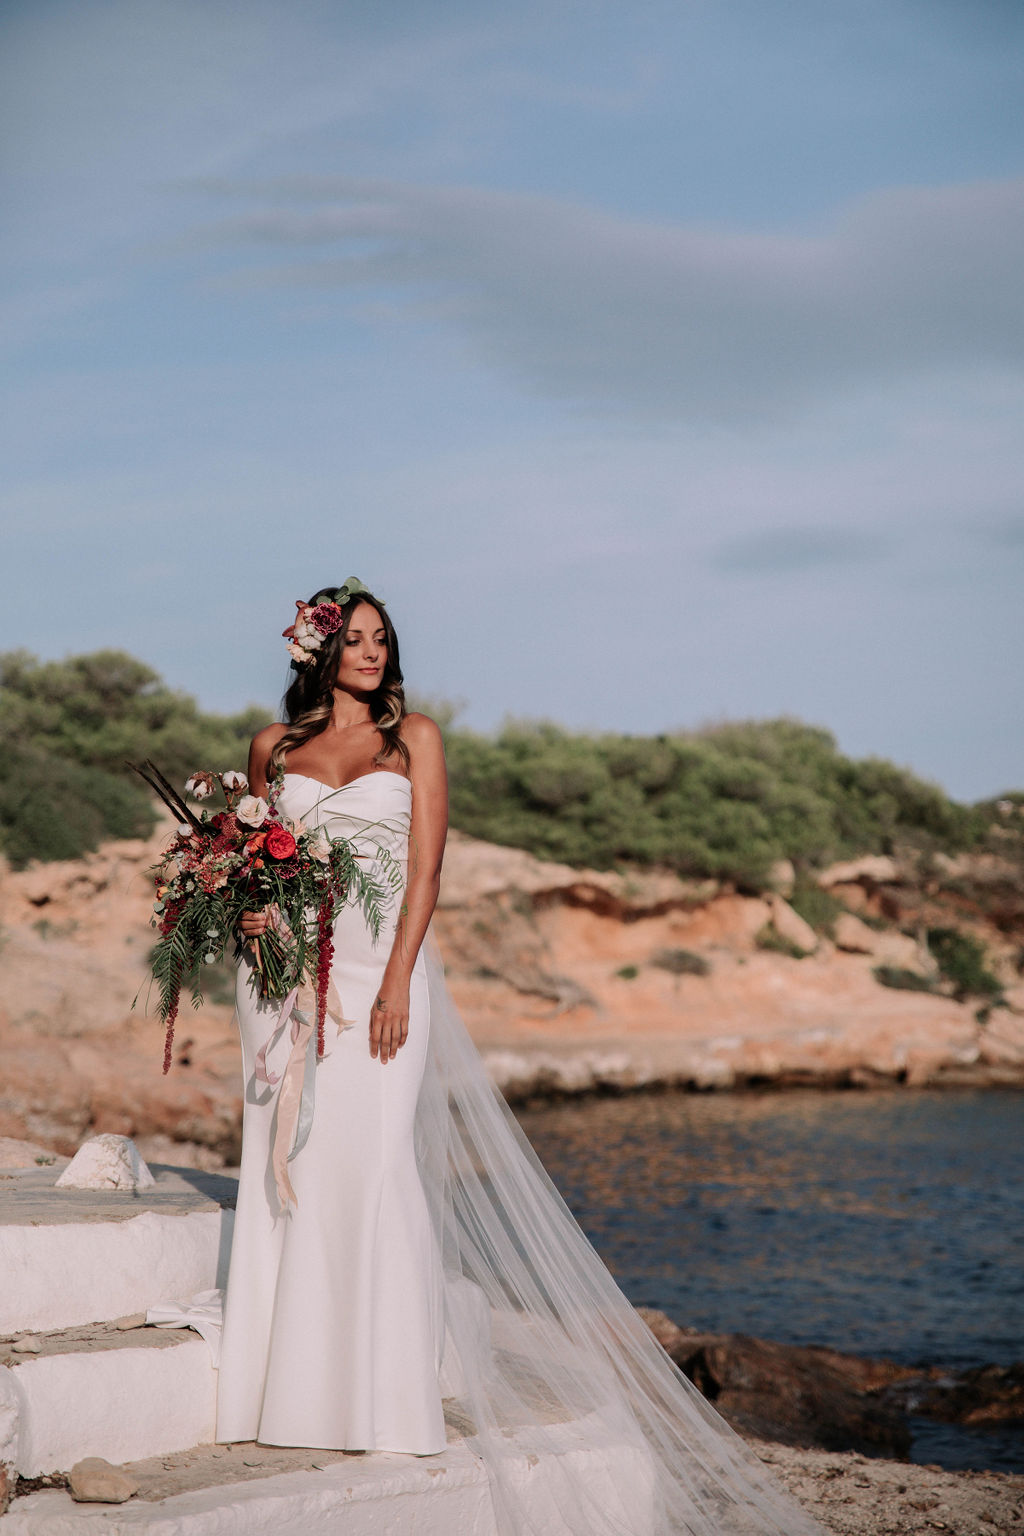 Two brides - love is love shoot - cathedral veil with lace - iniza destination wedding inspiration (29)